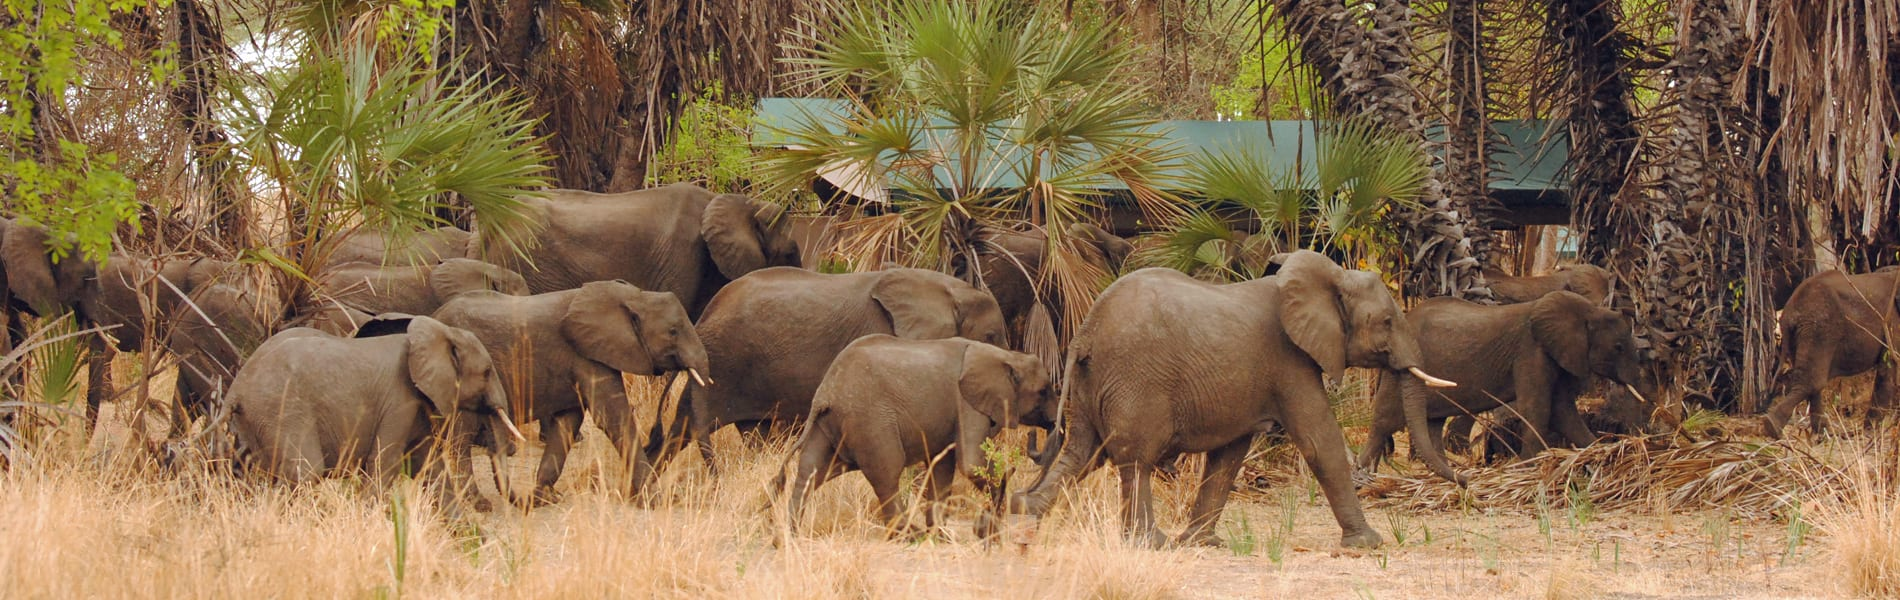 Lake Manze Tented Camp elephants